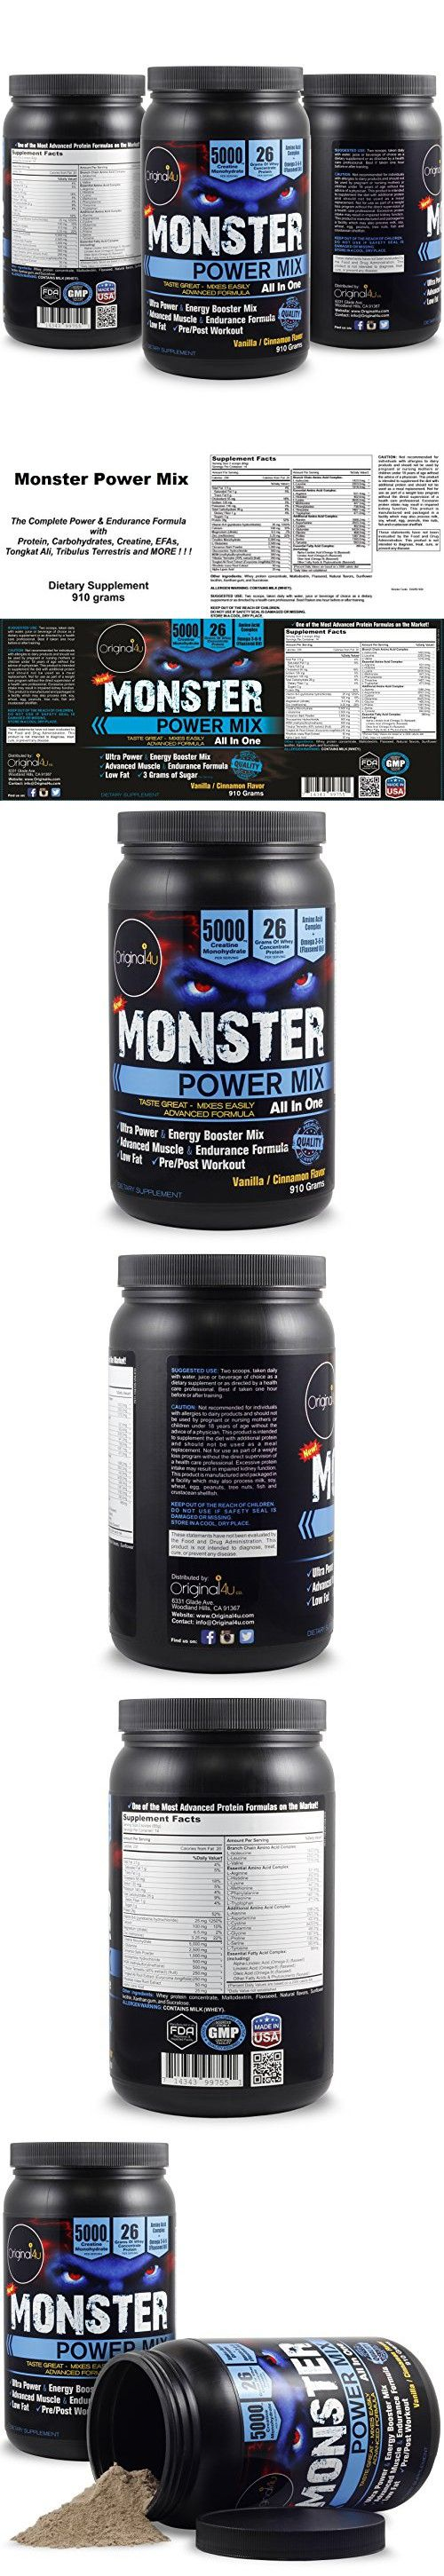 POWER MIX (ALL IN ONE) - The Complete Energy ,Power & Endurance Formula with Protein, Carbohydrates, Creatine,Amino Acids,